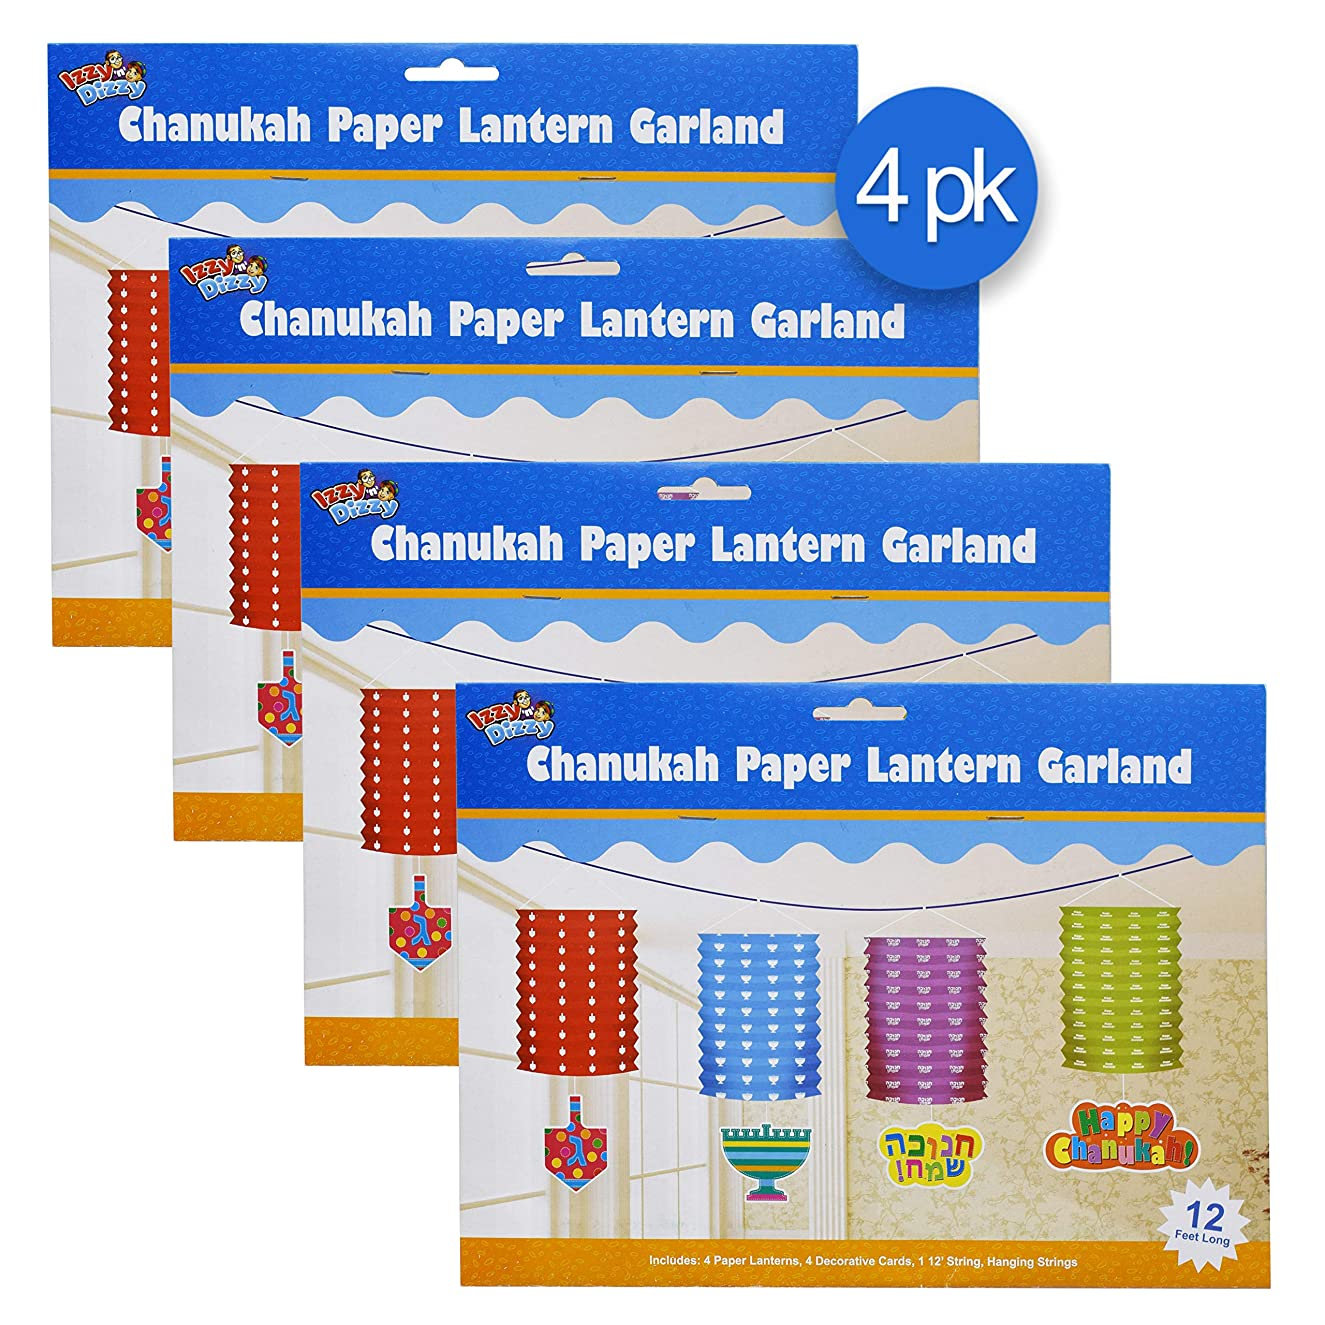 Hanukkah Chain Link Garland - 16 Links - Up to 48 Feet Long - Self Stick Edges - Hanukah Party Decorations and Supplies - Izzy 'n' Dizzy